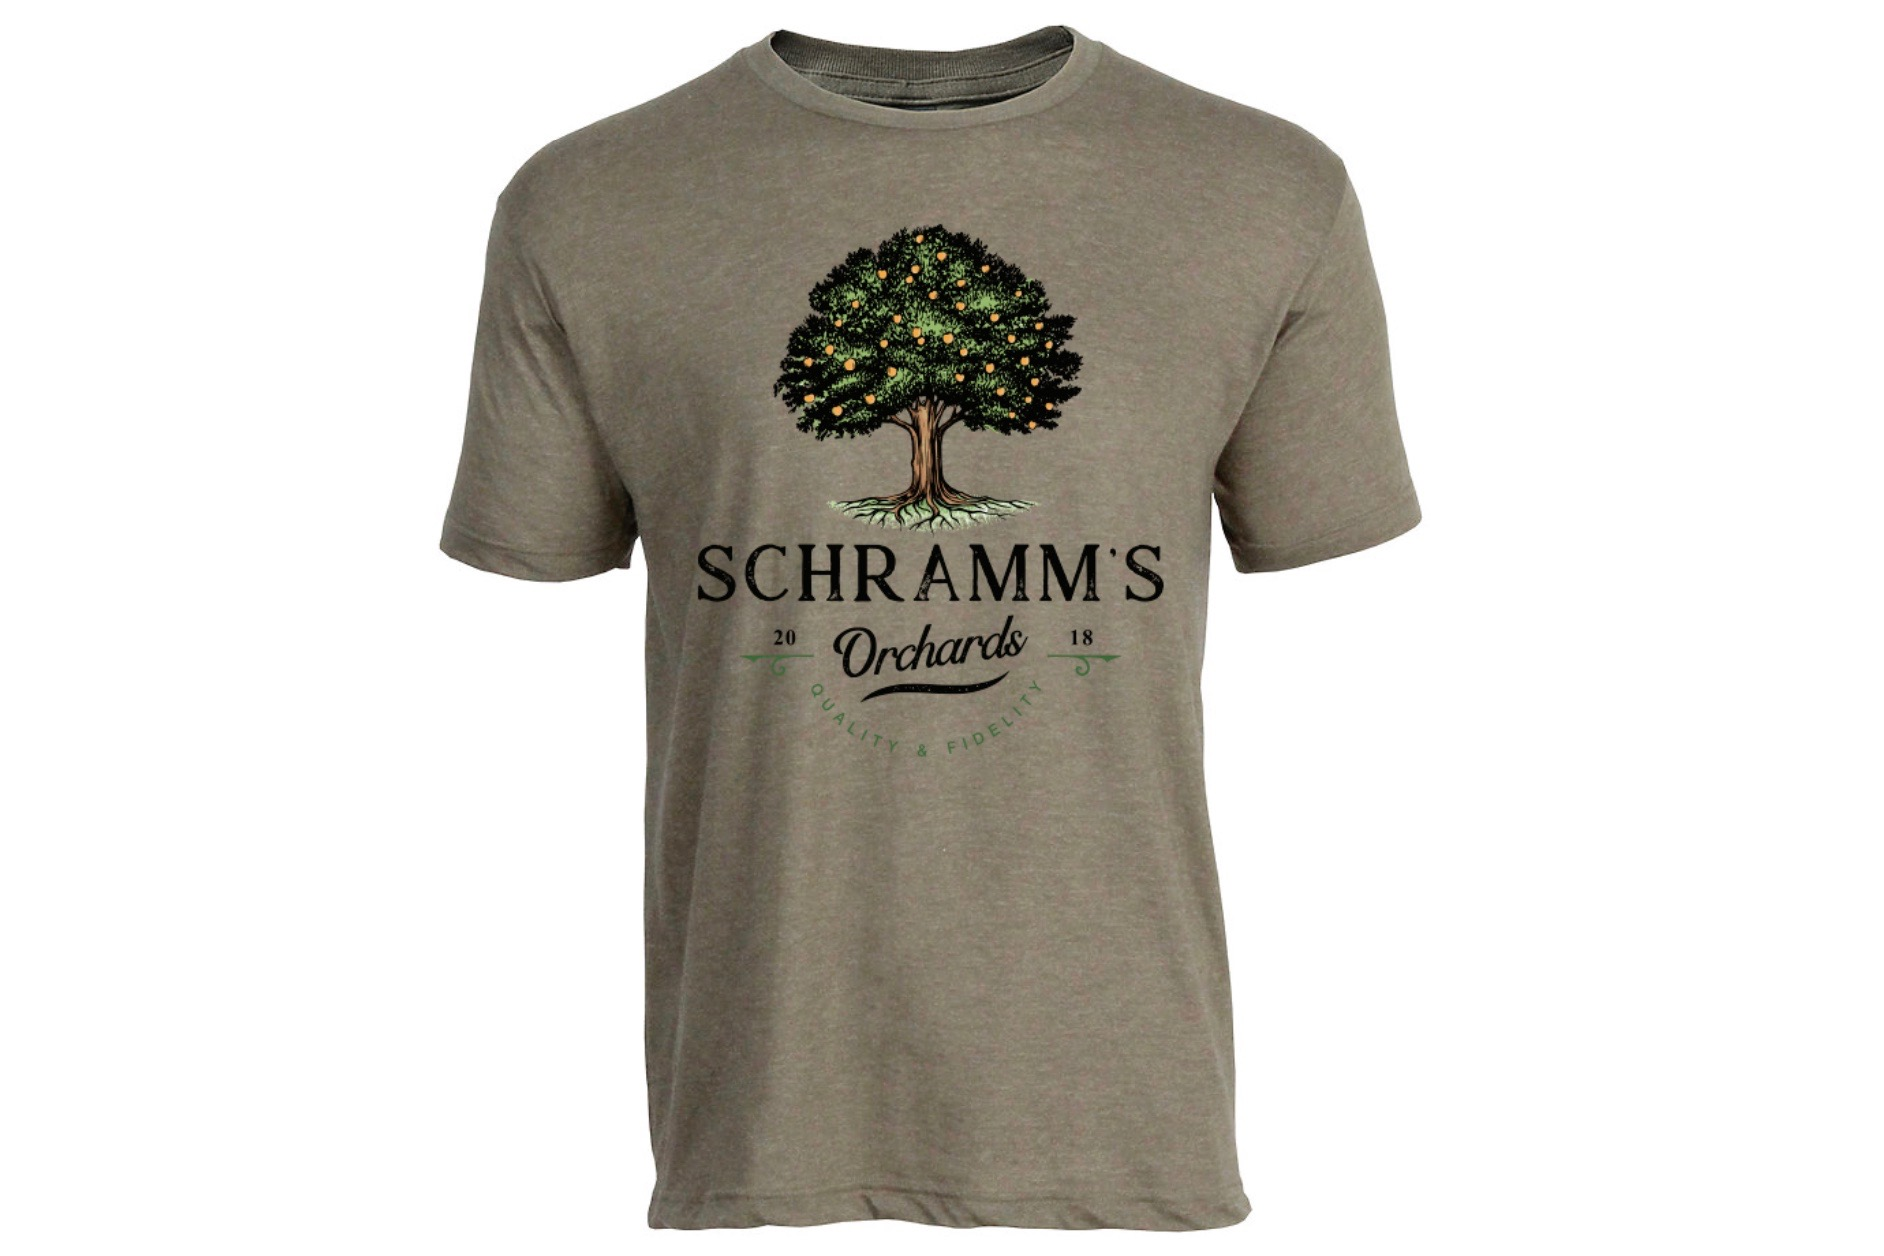 Schramm's Orchards Tee SWATCH